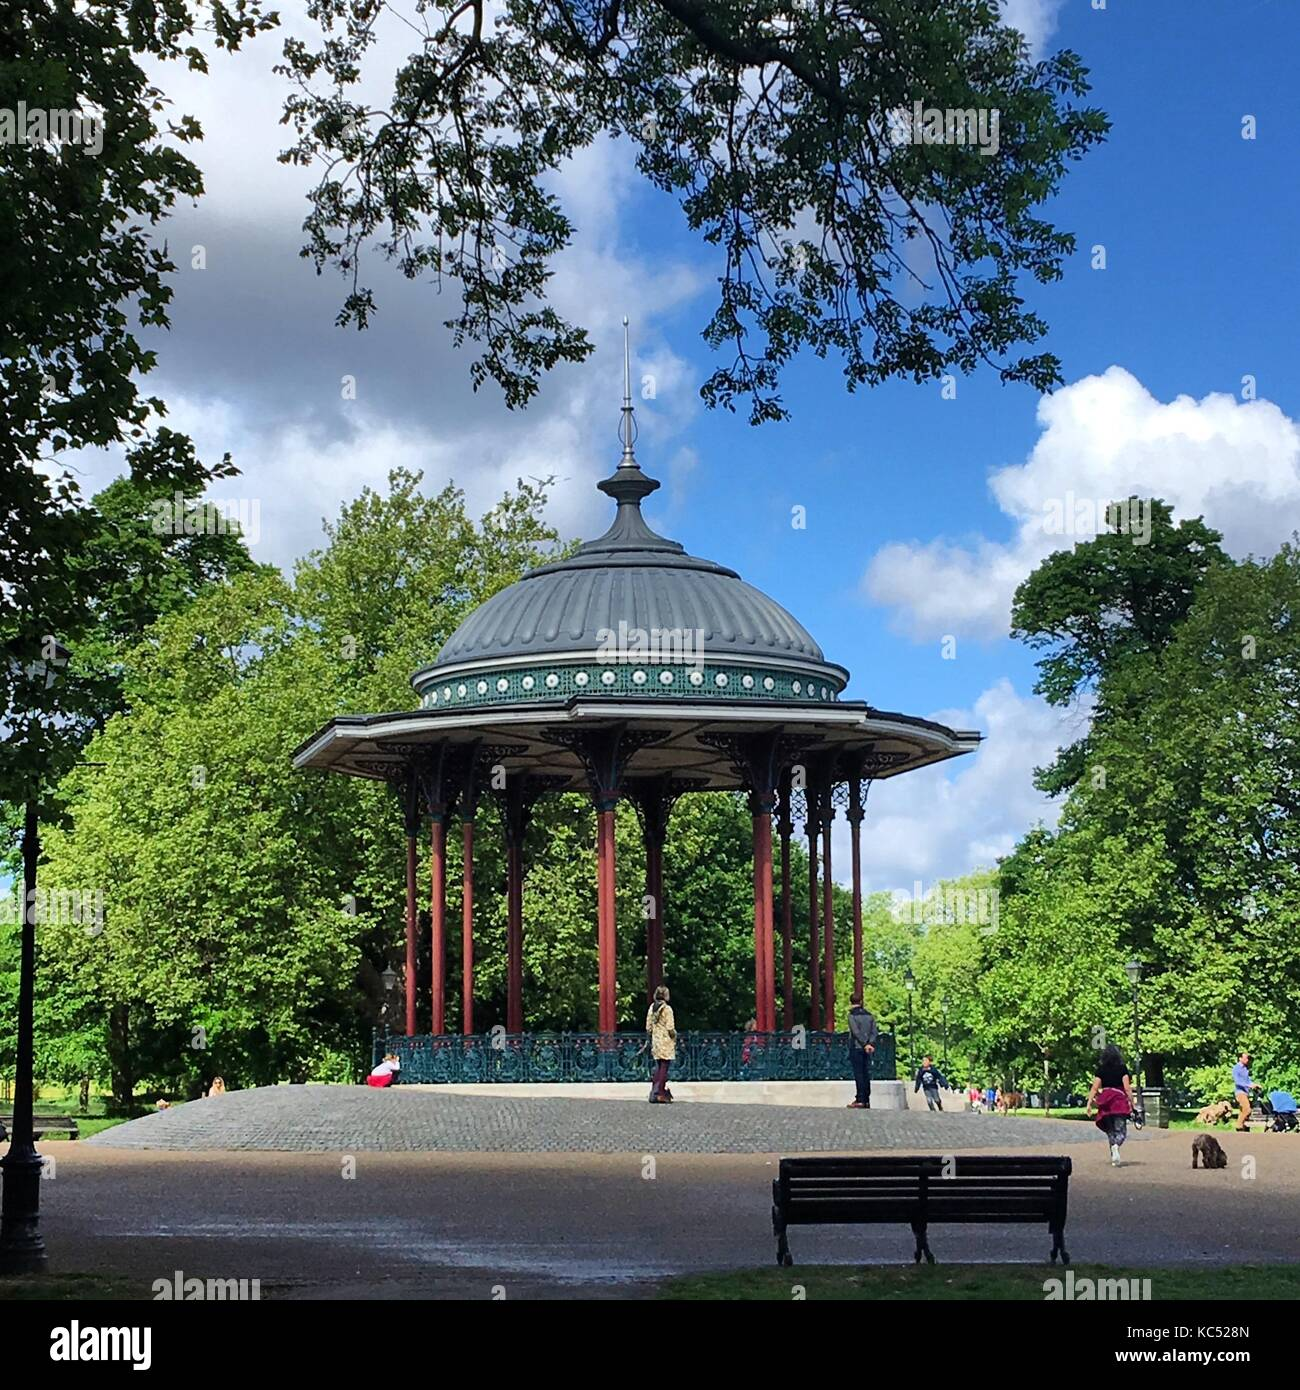 The Bandstand at Clapham Common - Stock Image